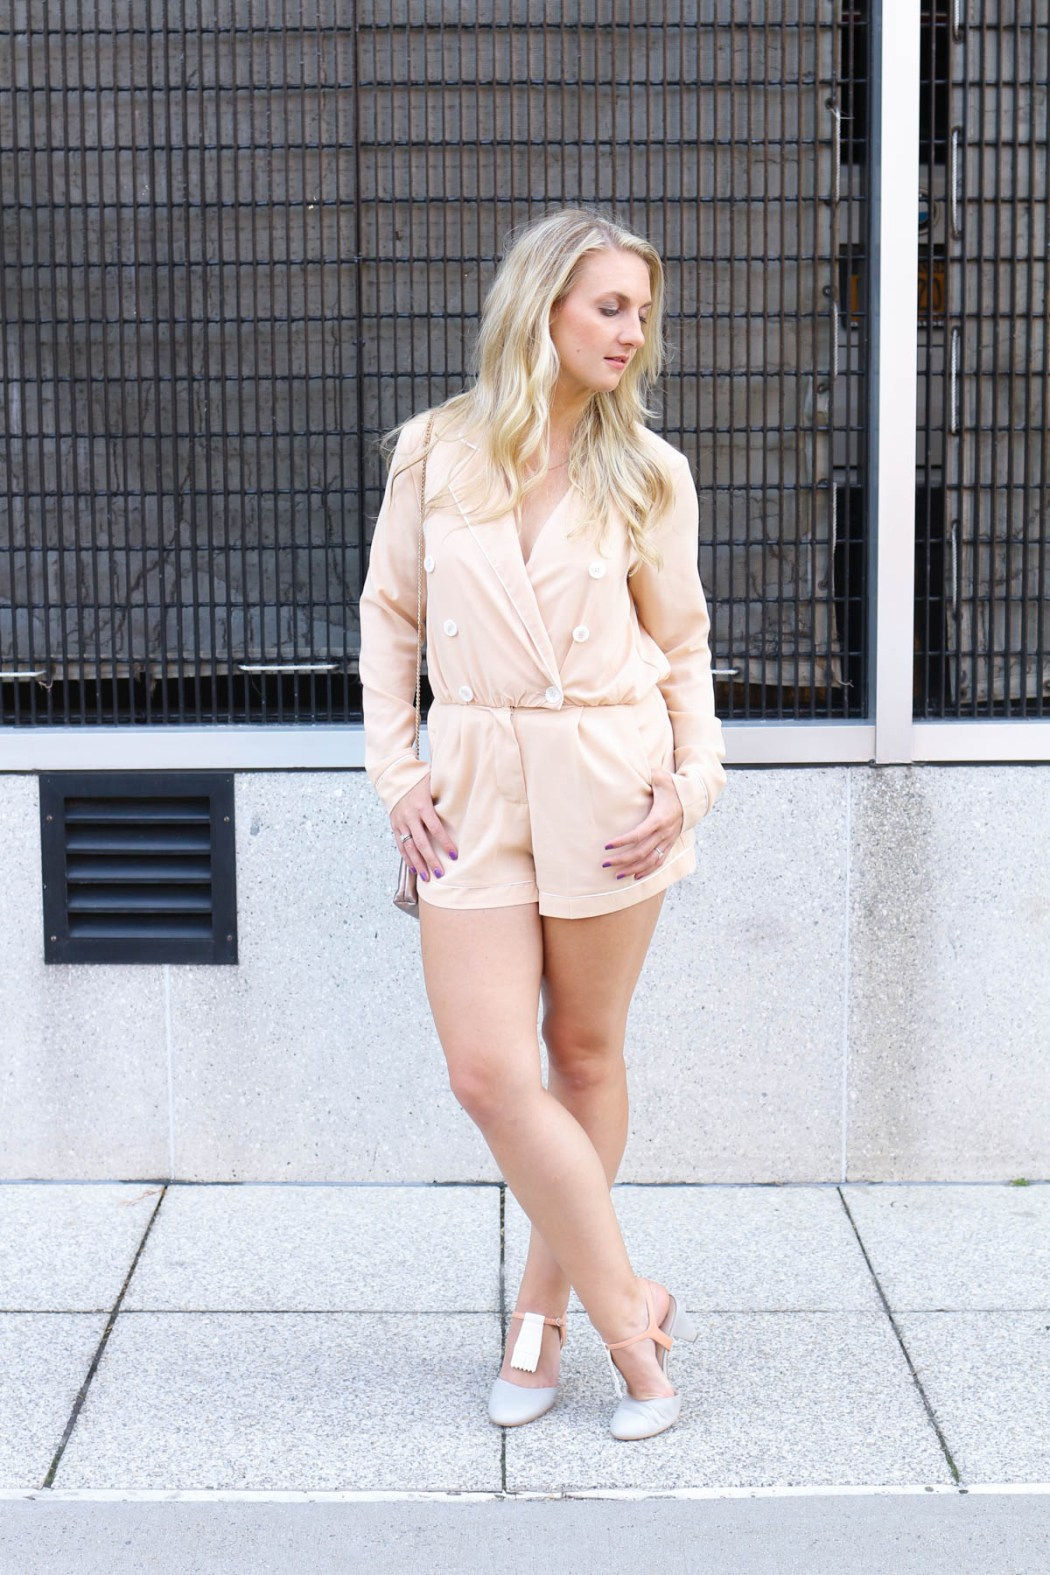 Fashion blogger Allyn Lewis of The Gem in a blush long sleeve romper with Drew & Co Jewelry and an Amazfit activity tracker.